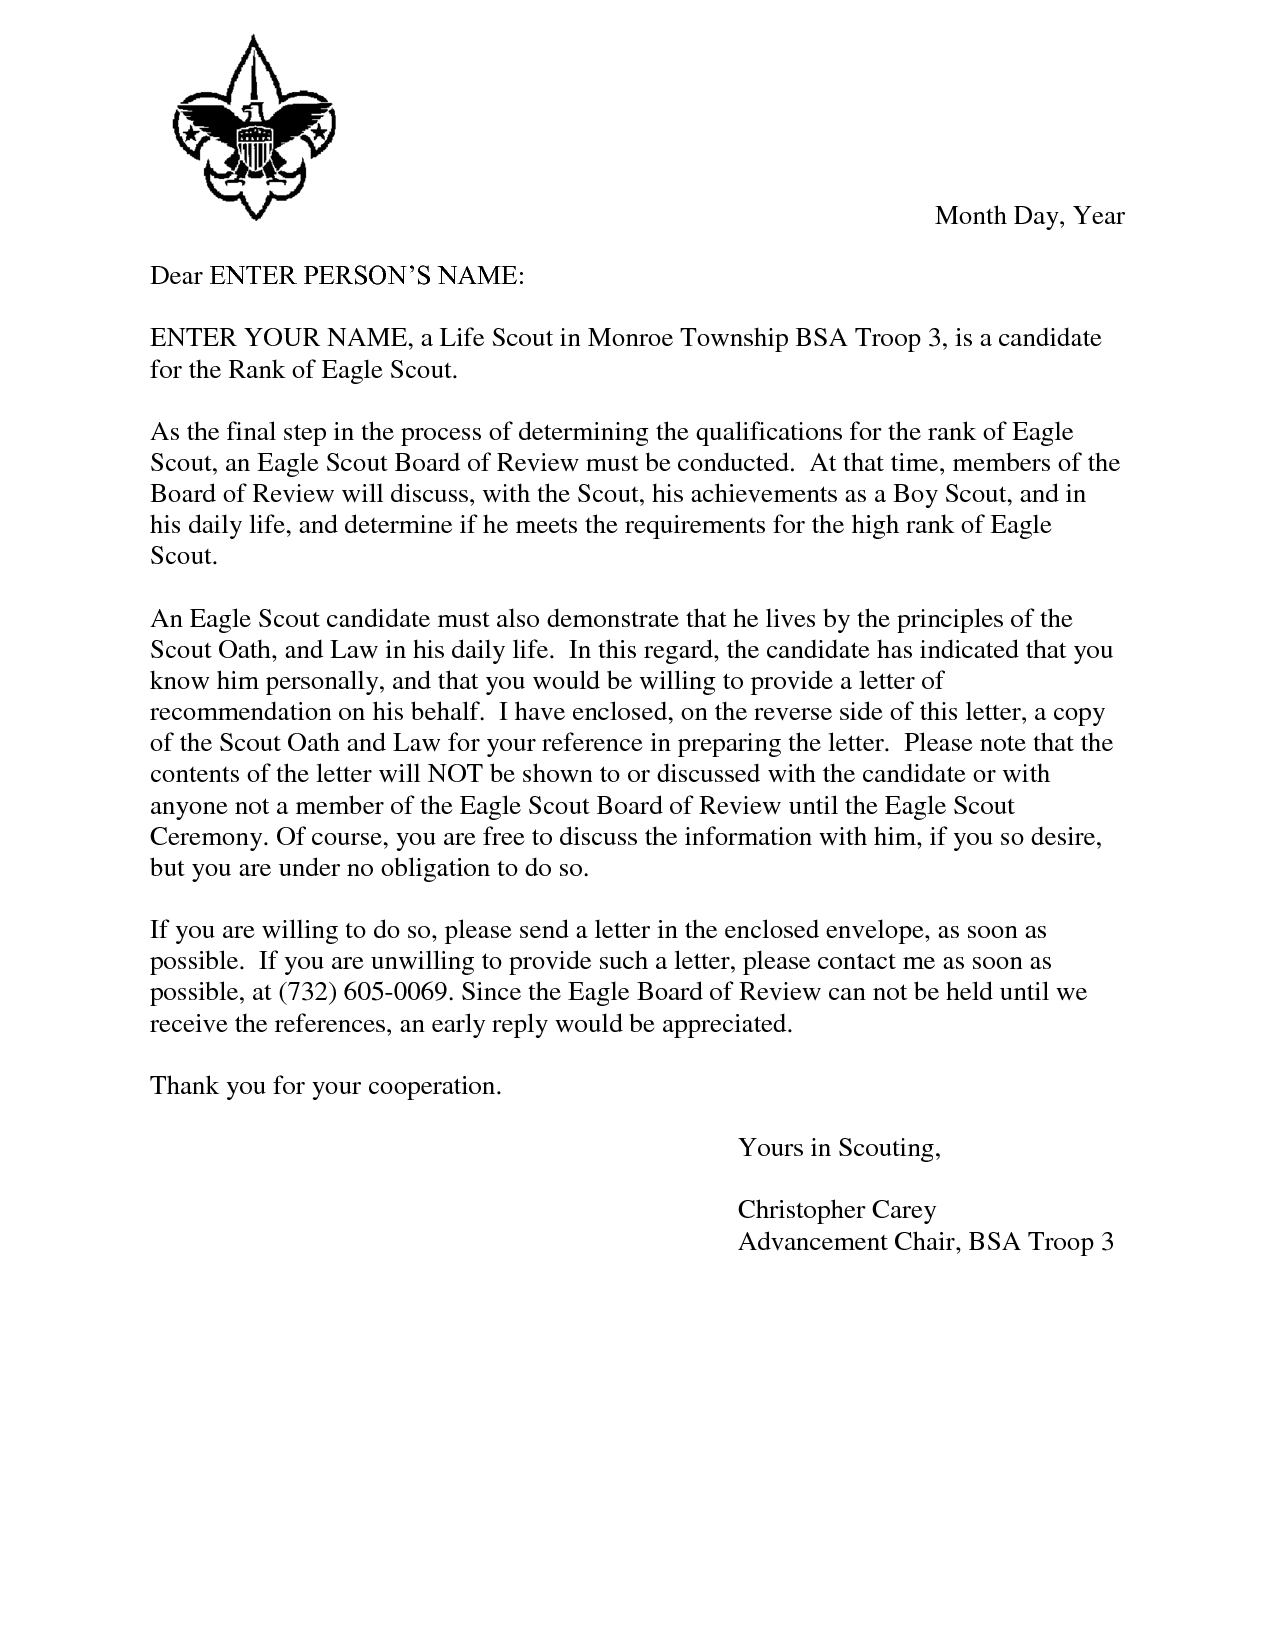 Reference Request Letter Template - Eagle Scout Reference Request Sample Letter Doc 7 by Hfr990q